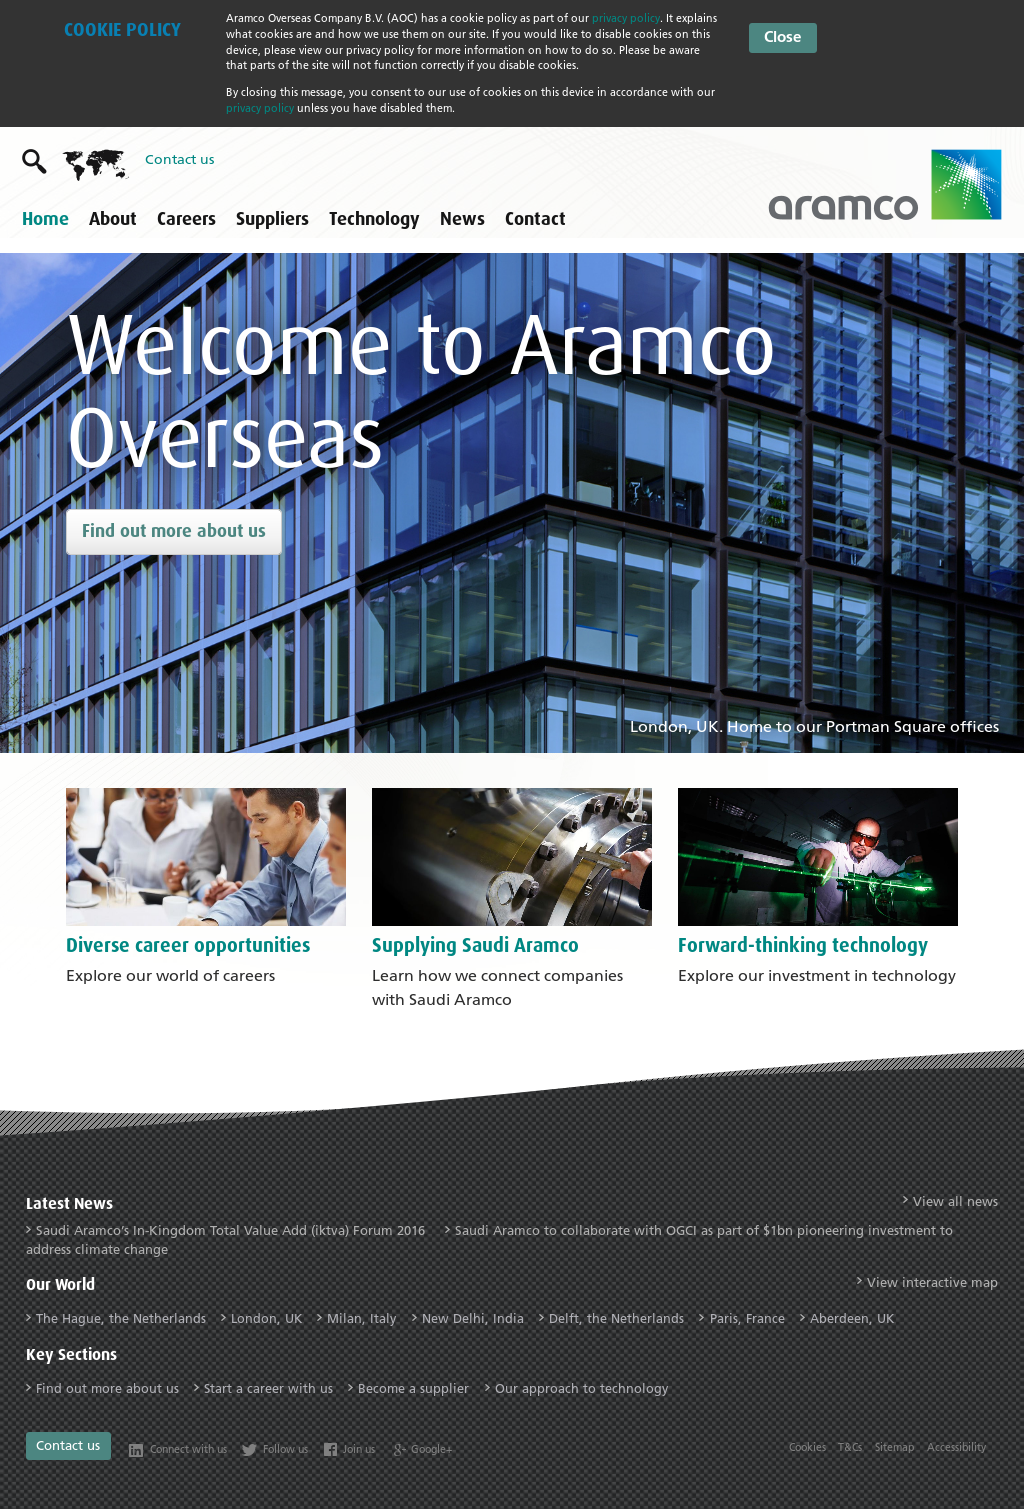 Aramco Overseas Company Competitors, Revenue and Employees